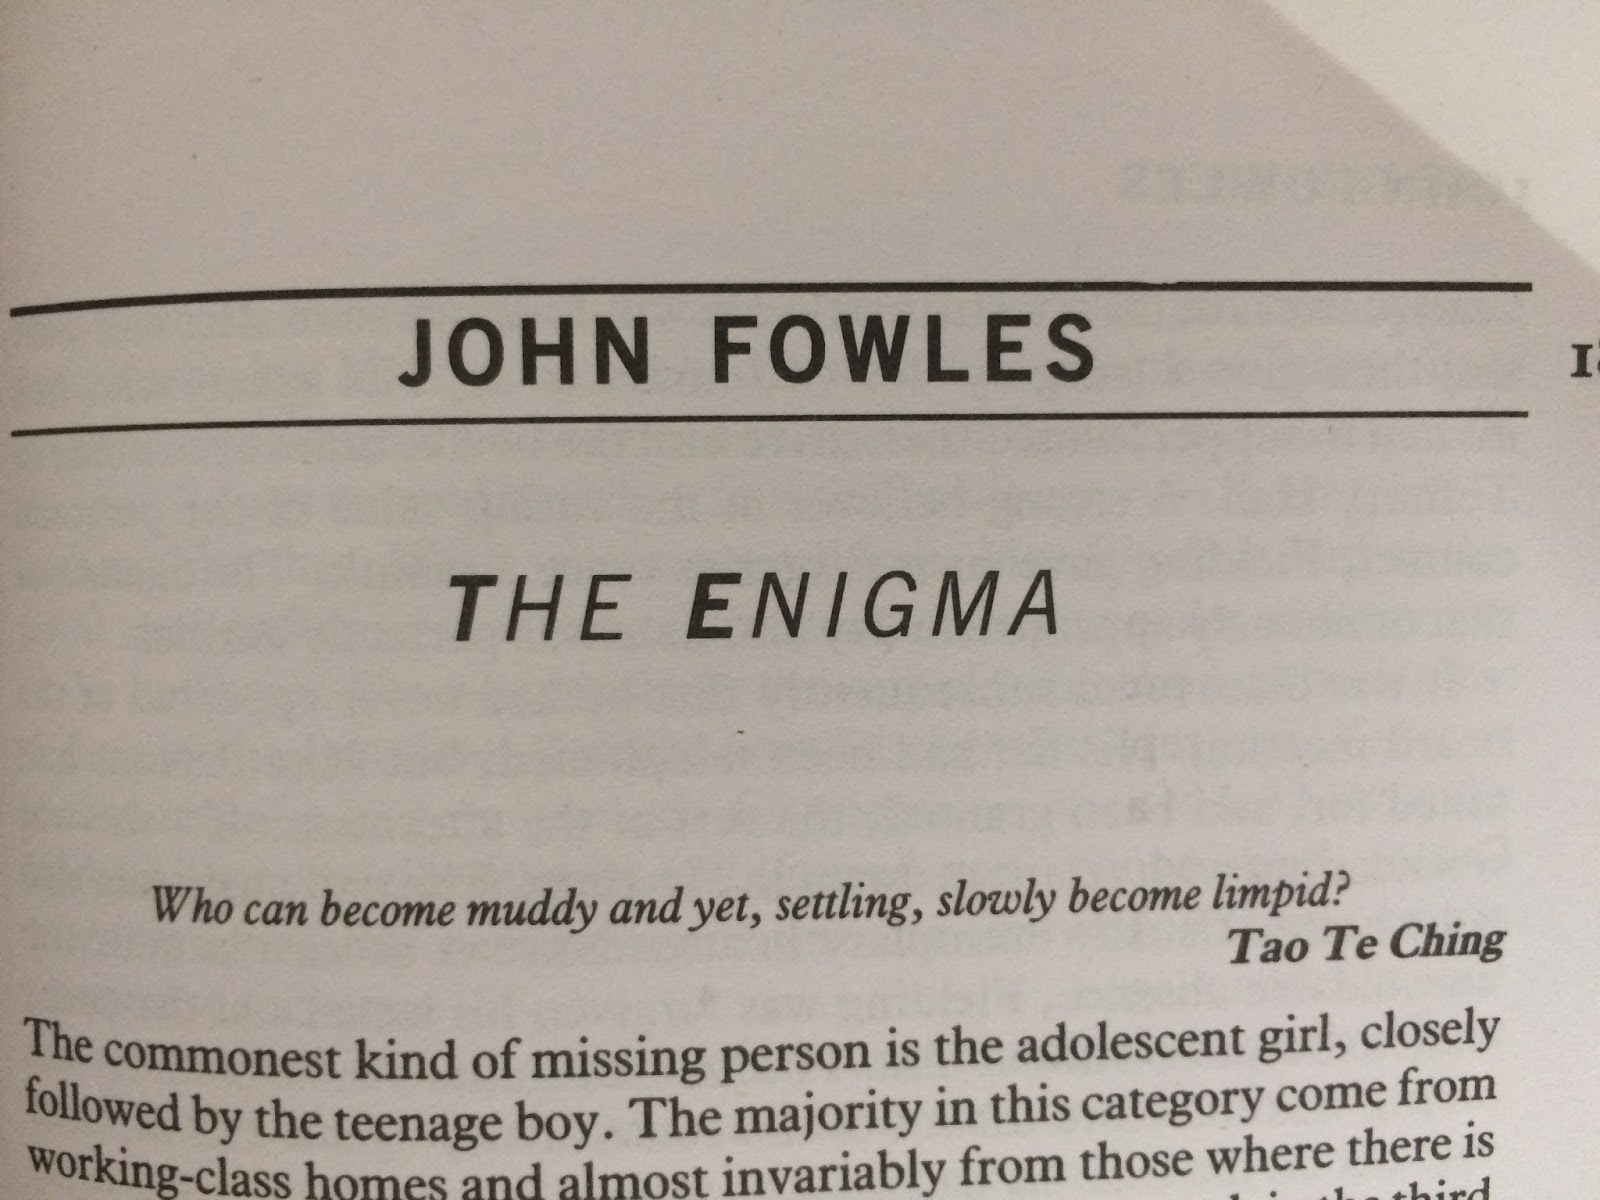 The Enigma by John Fowles